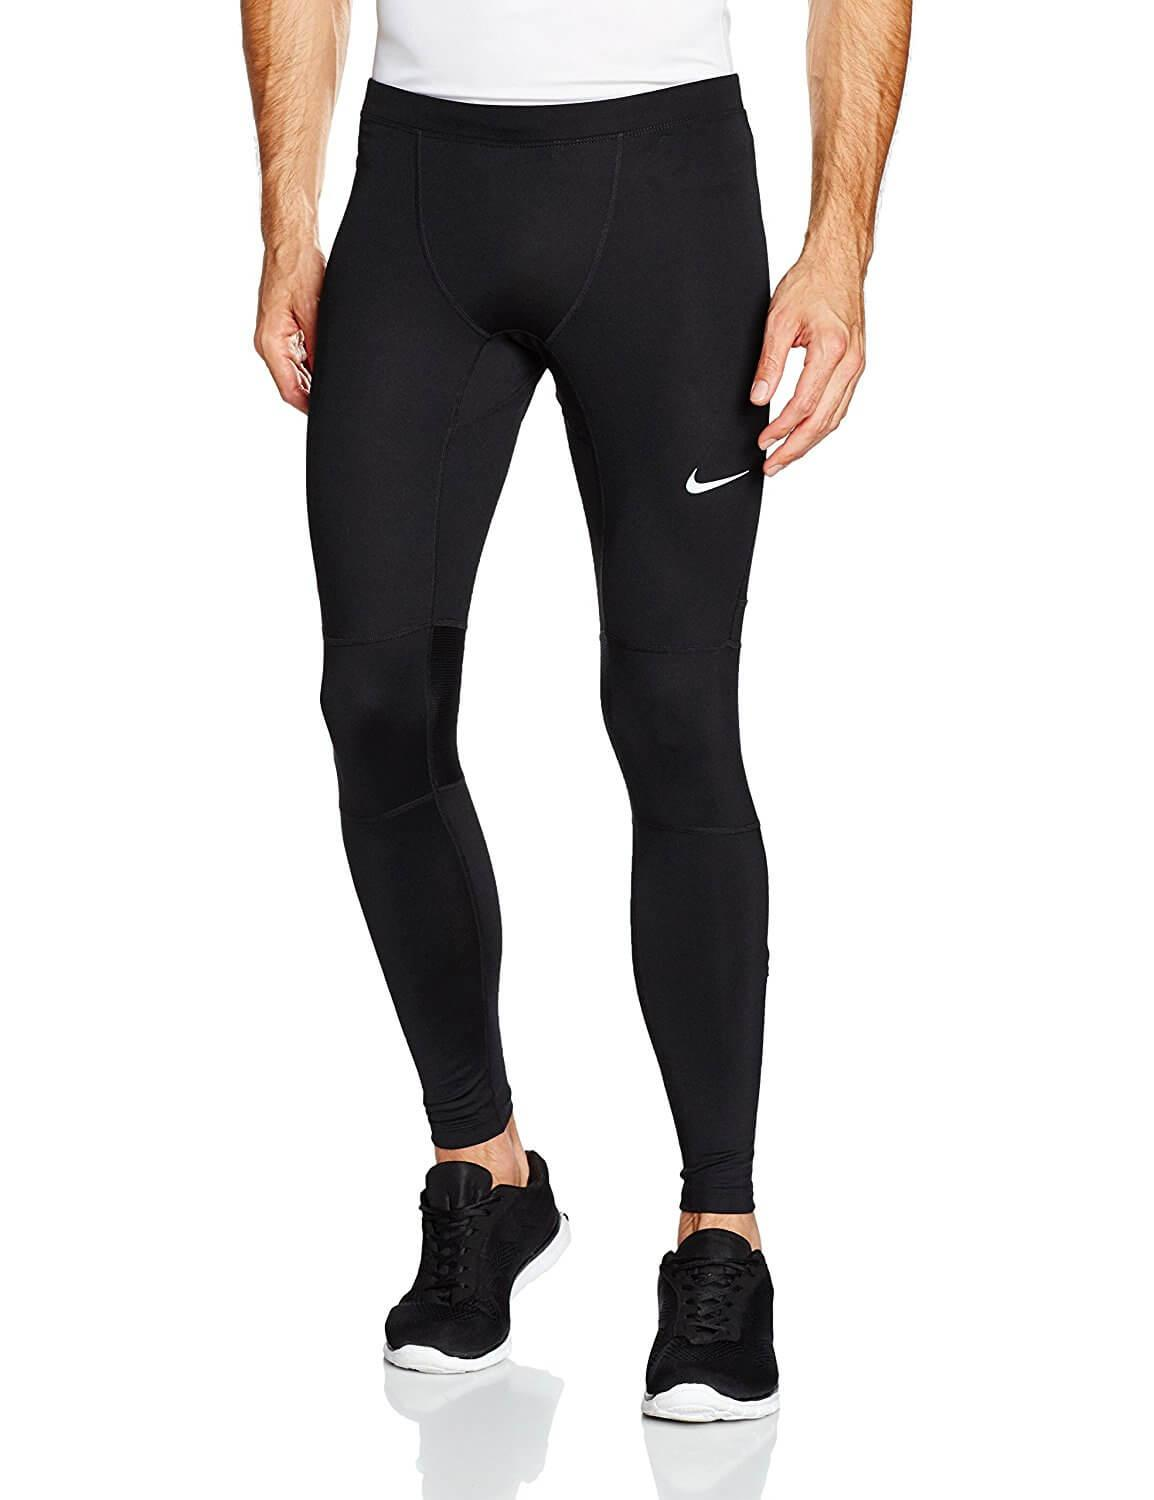 3cbce74c9b90a5 Best Nike Running Tights Reviewed in 2019 | RunnerClick